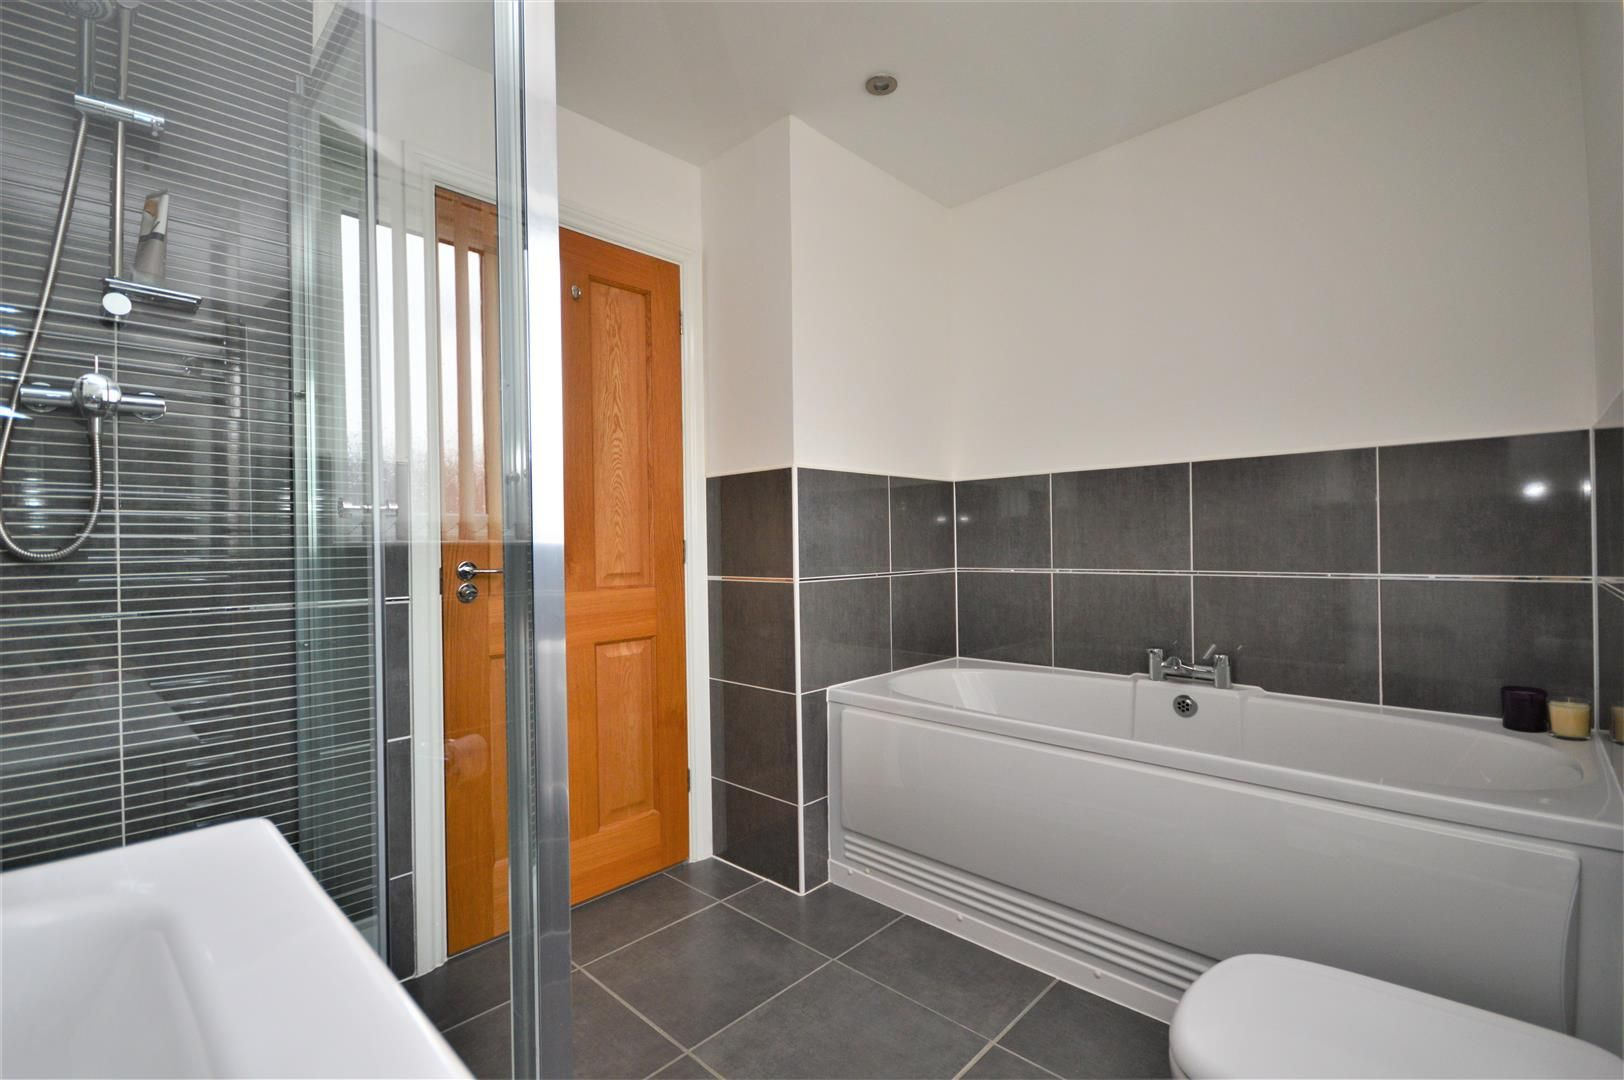 4 bed detached for sale in Wellington 20